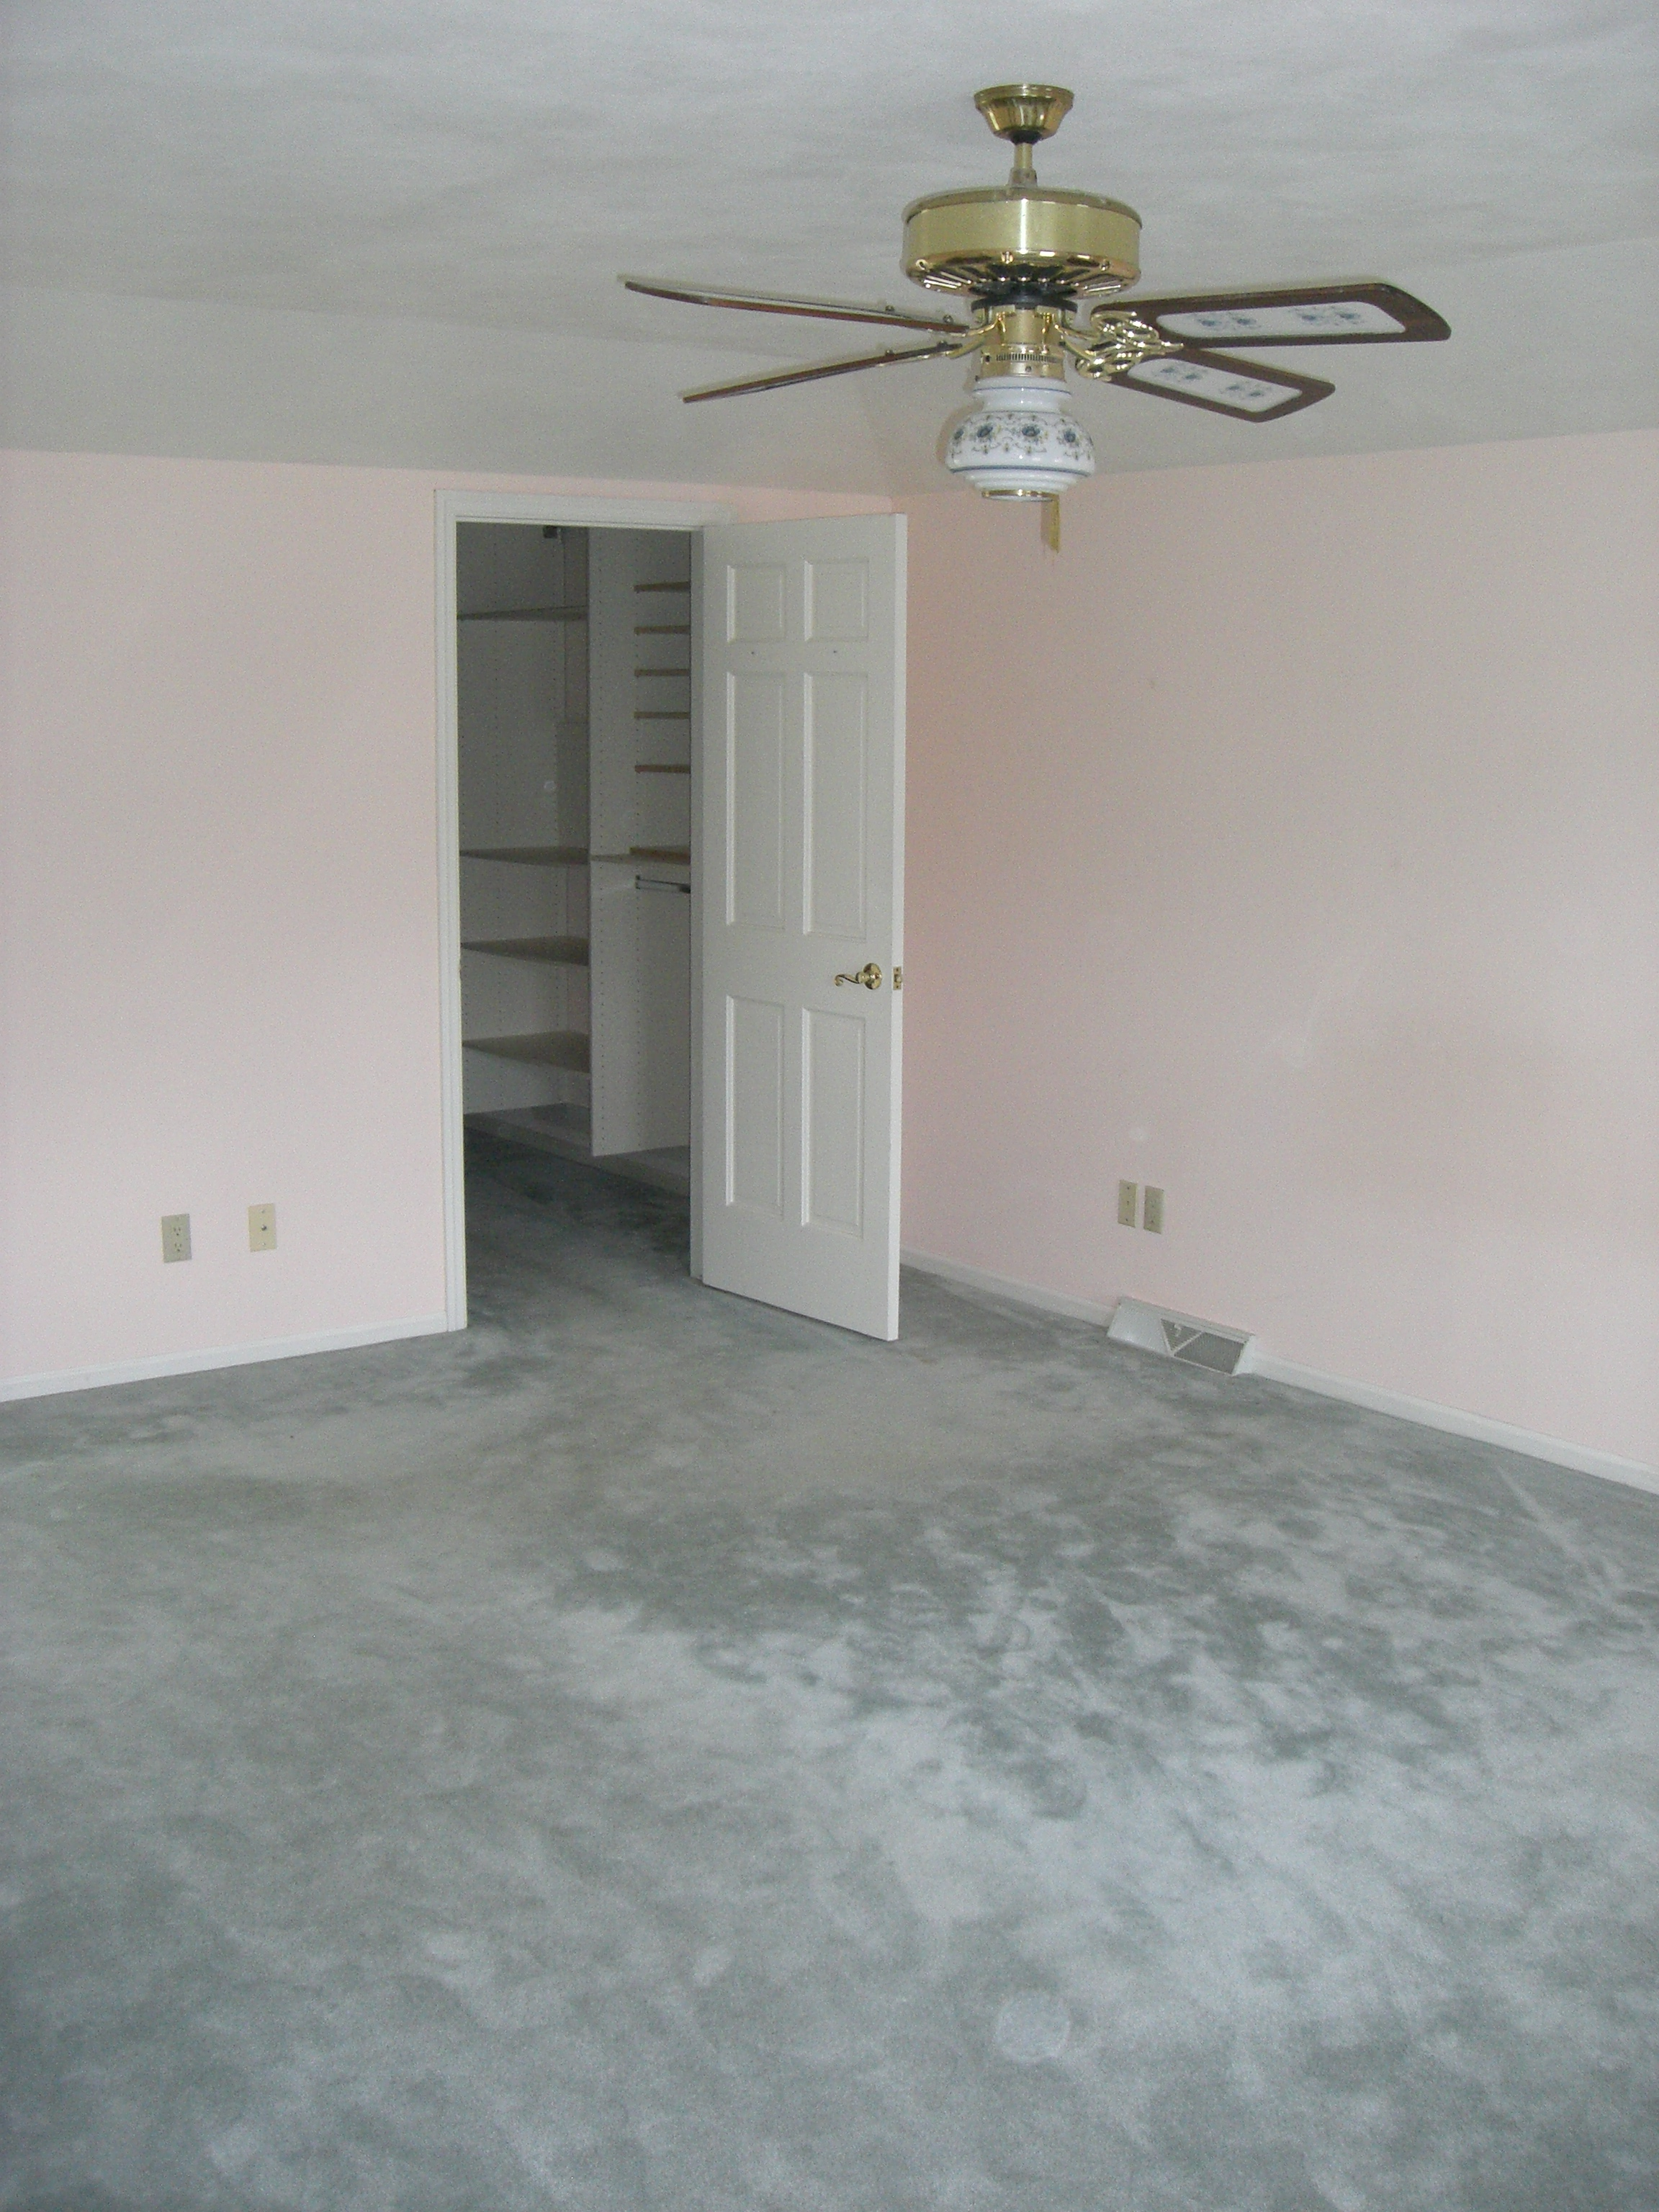 Teal Carpeting & Pink Walls Oh My!